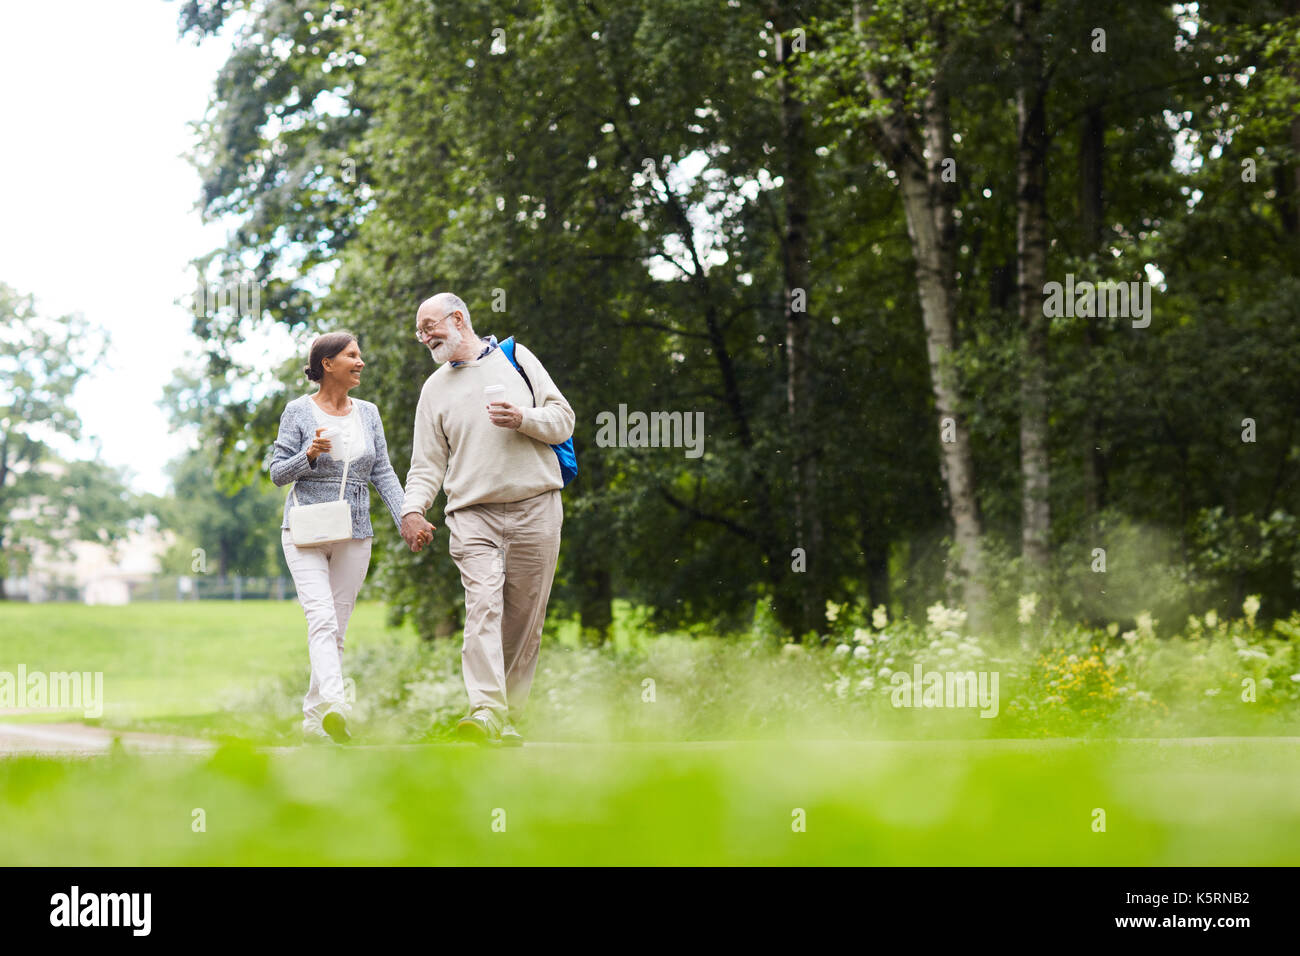 Couple of adventurers - Stock Image